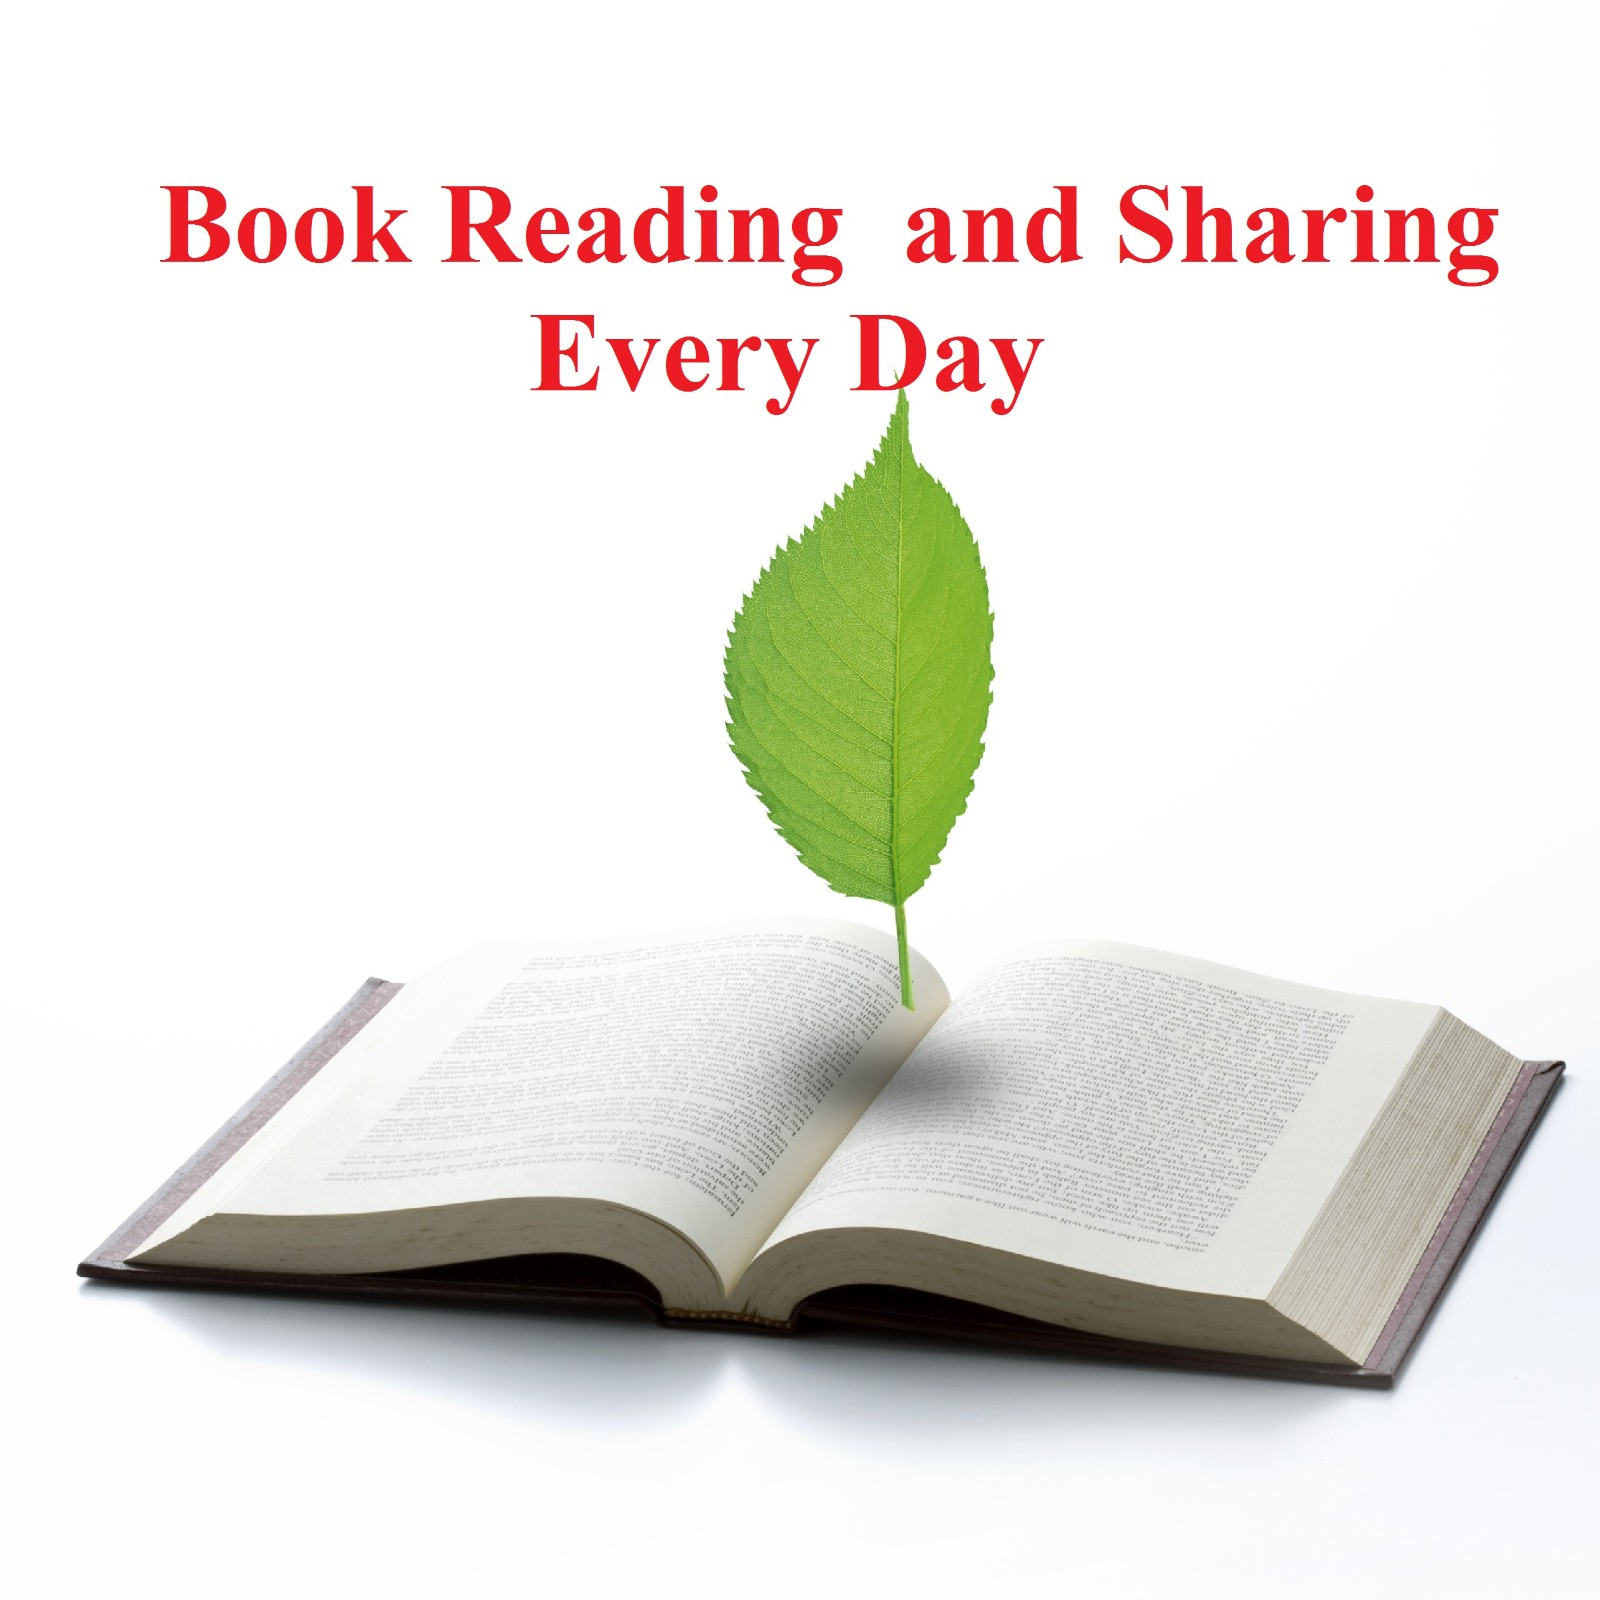 Book reading and sharing every day